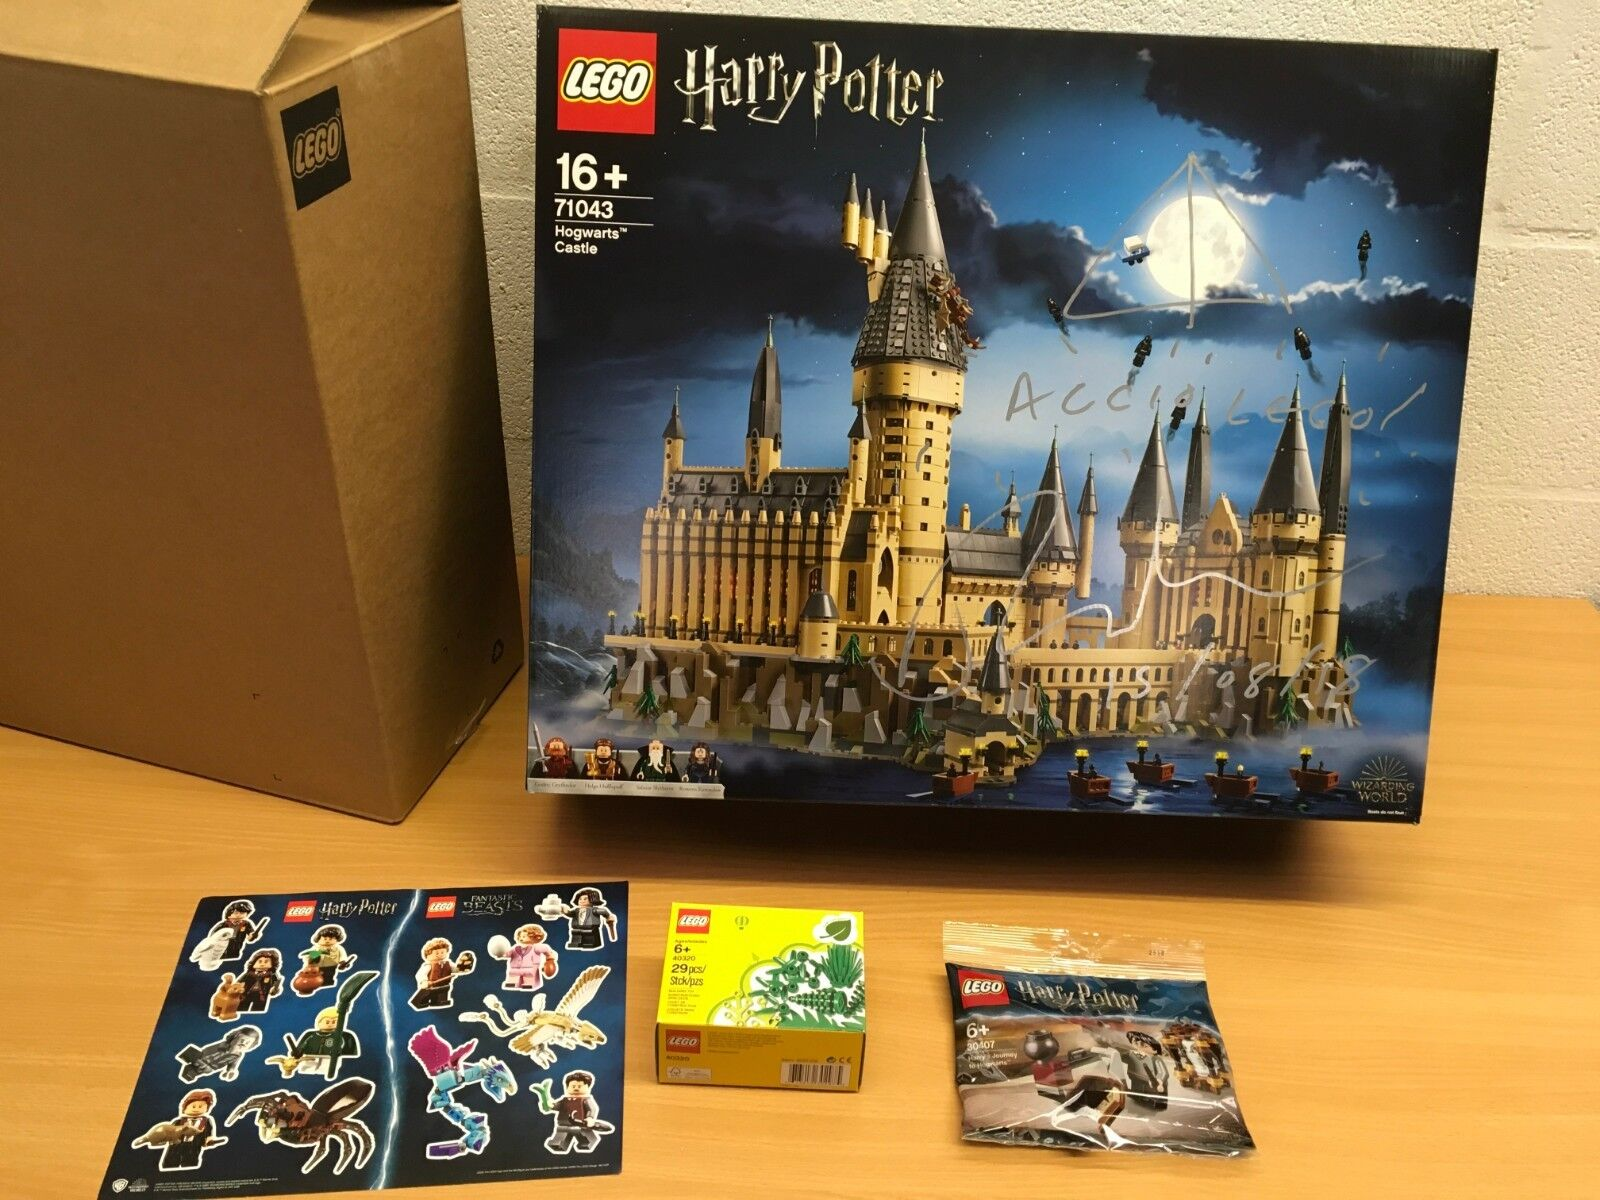 HARRY POTTER LEGO 71043 HOGWARTS CASTLE SIGNED AND EXTRAS VIP RELEASE NEW